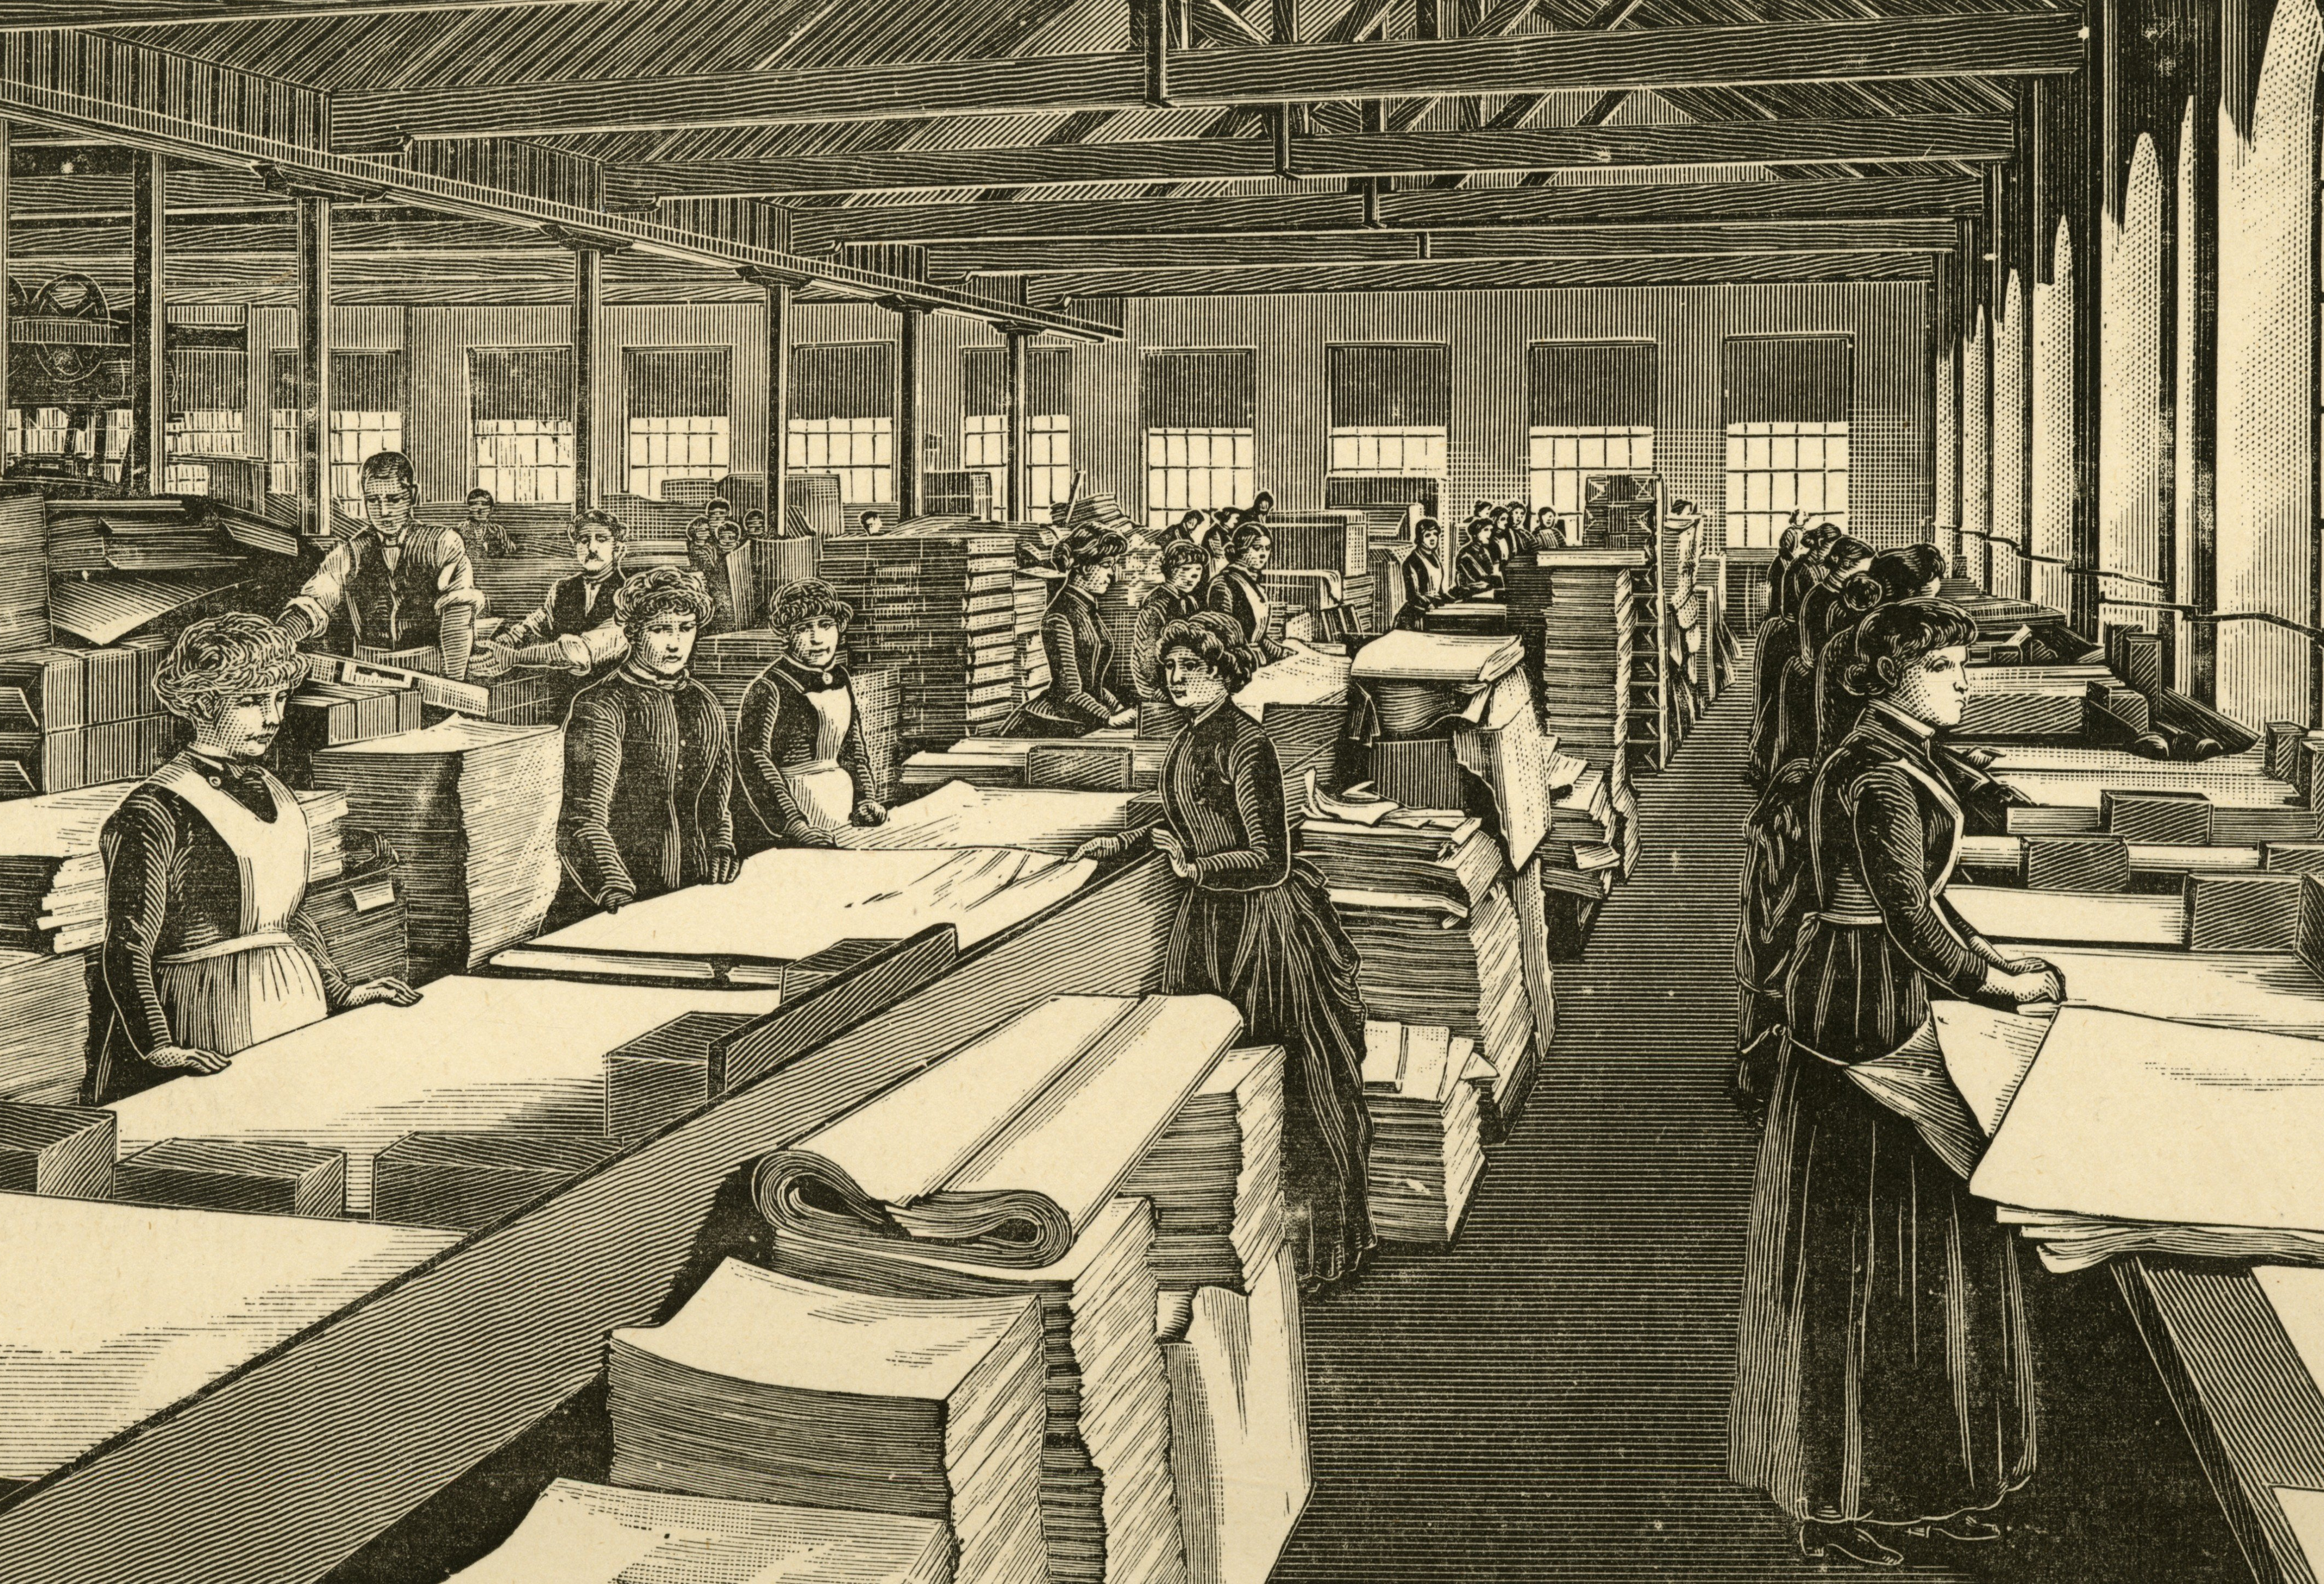 An image of an engraving showing the inspection of newly made paper before dispatch, Kent, England, 1887.